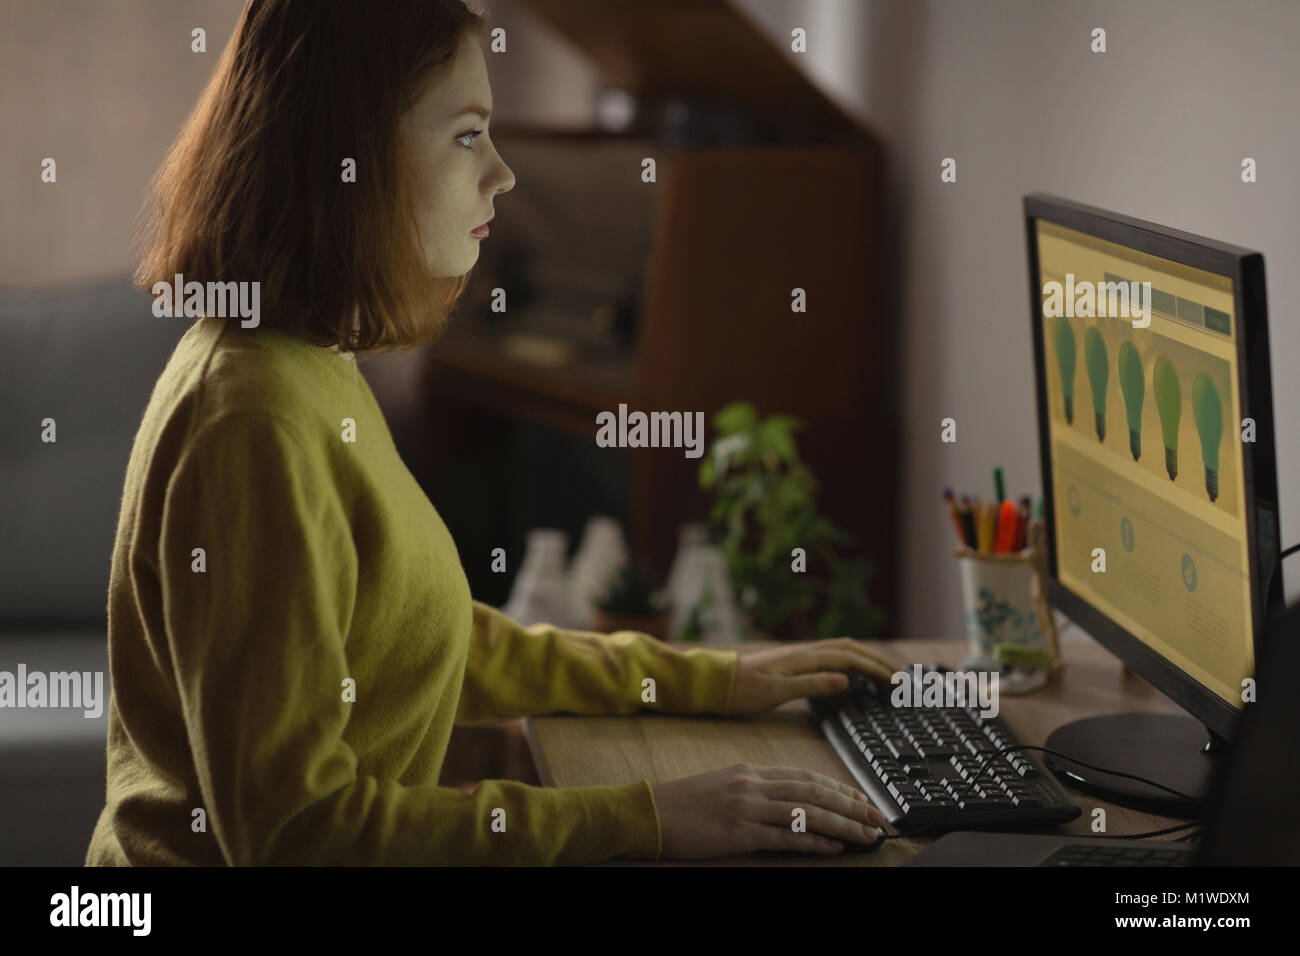 Woman using personal computer at home - Stock Image